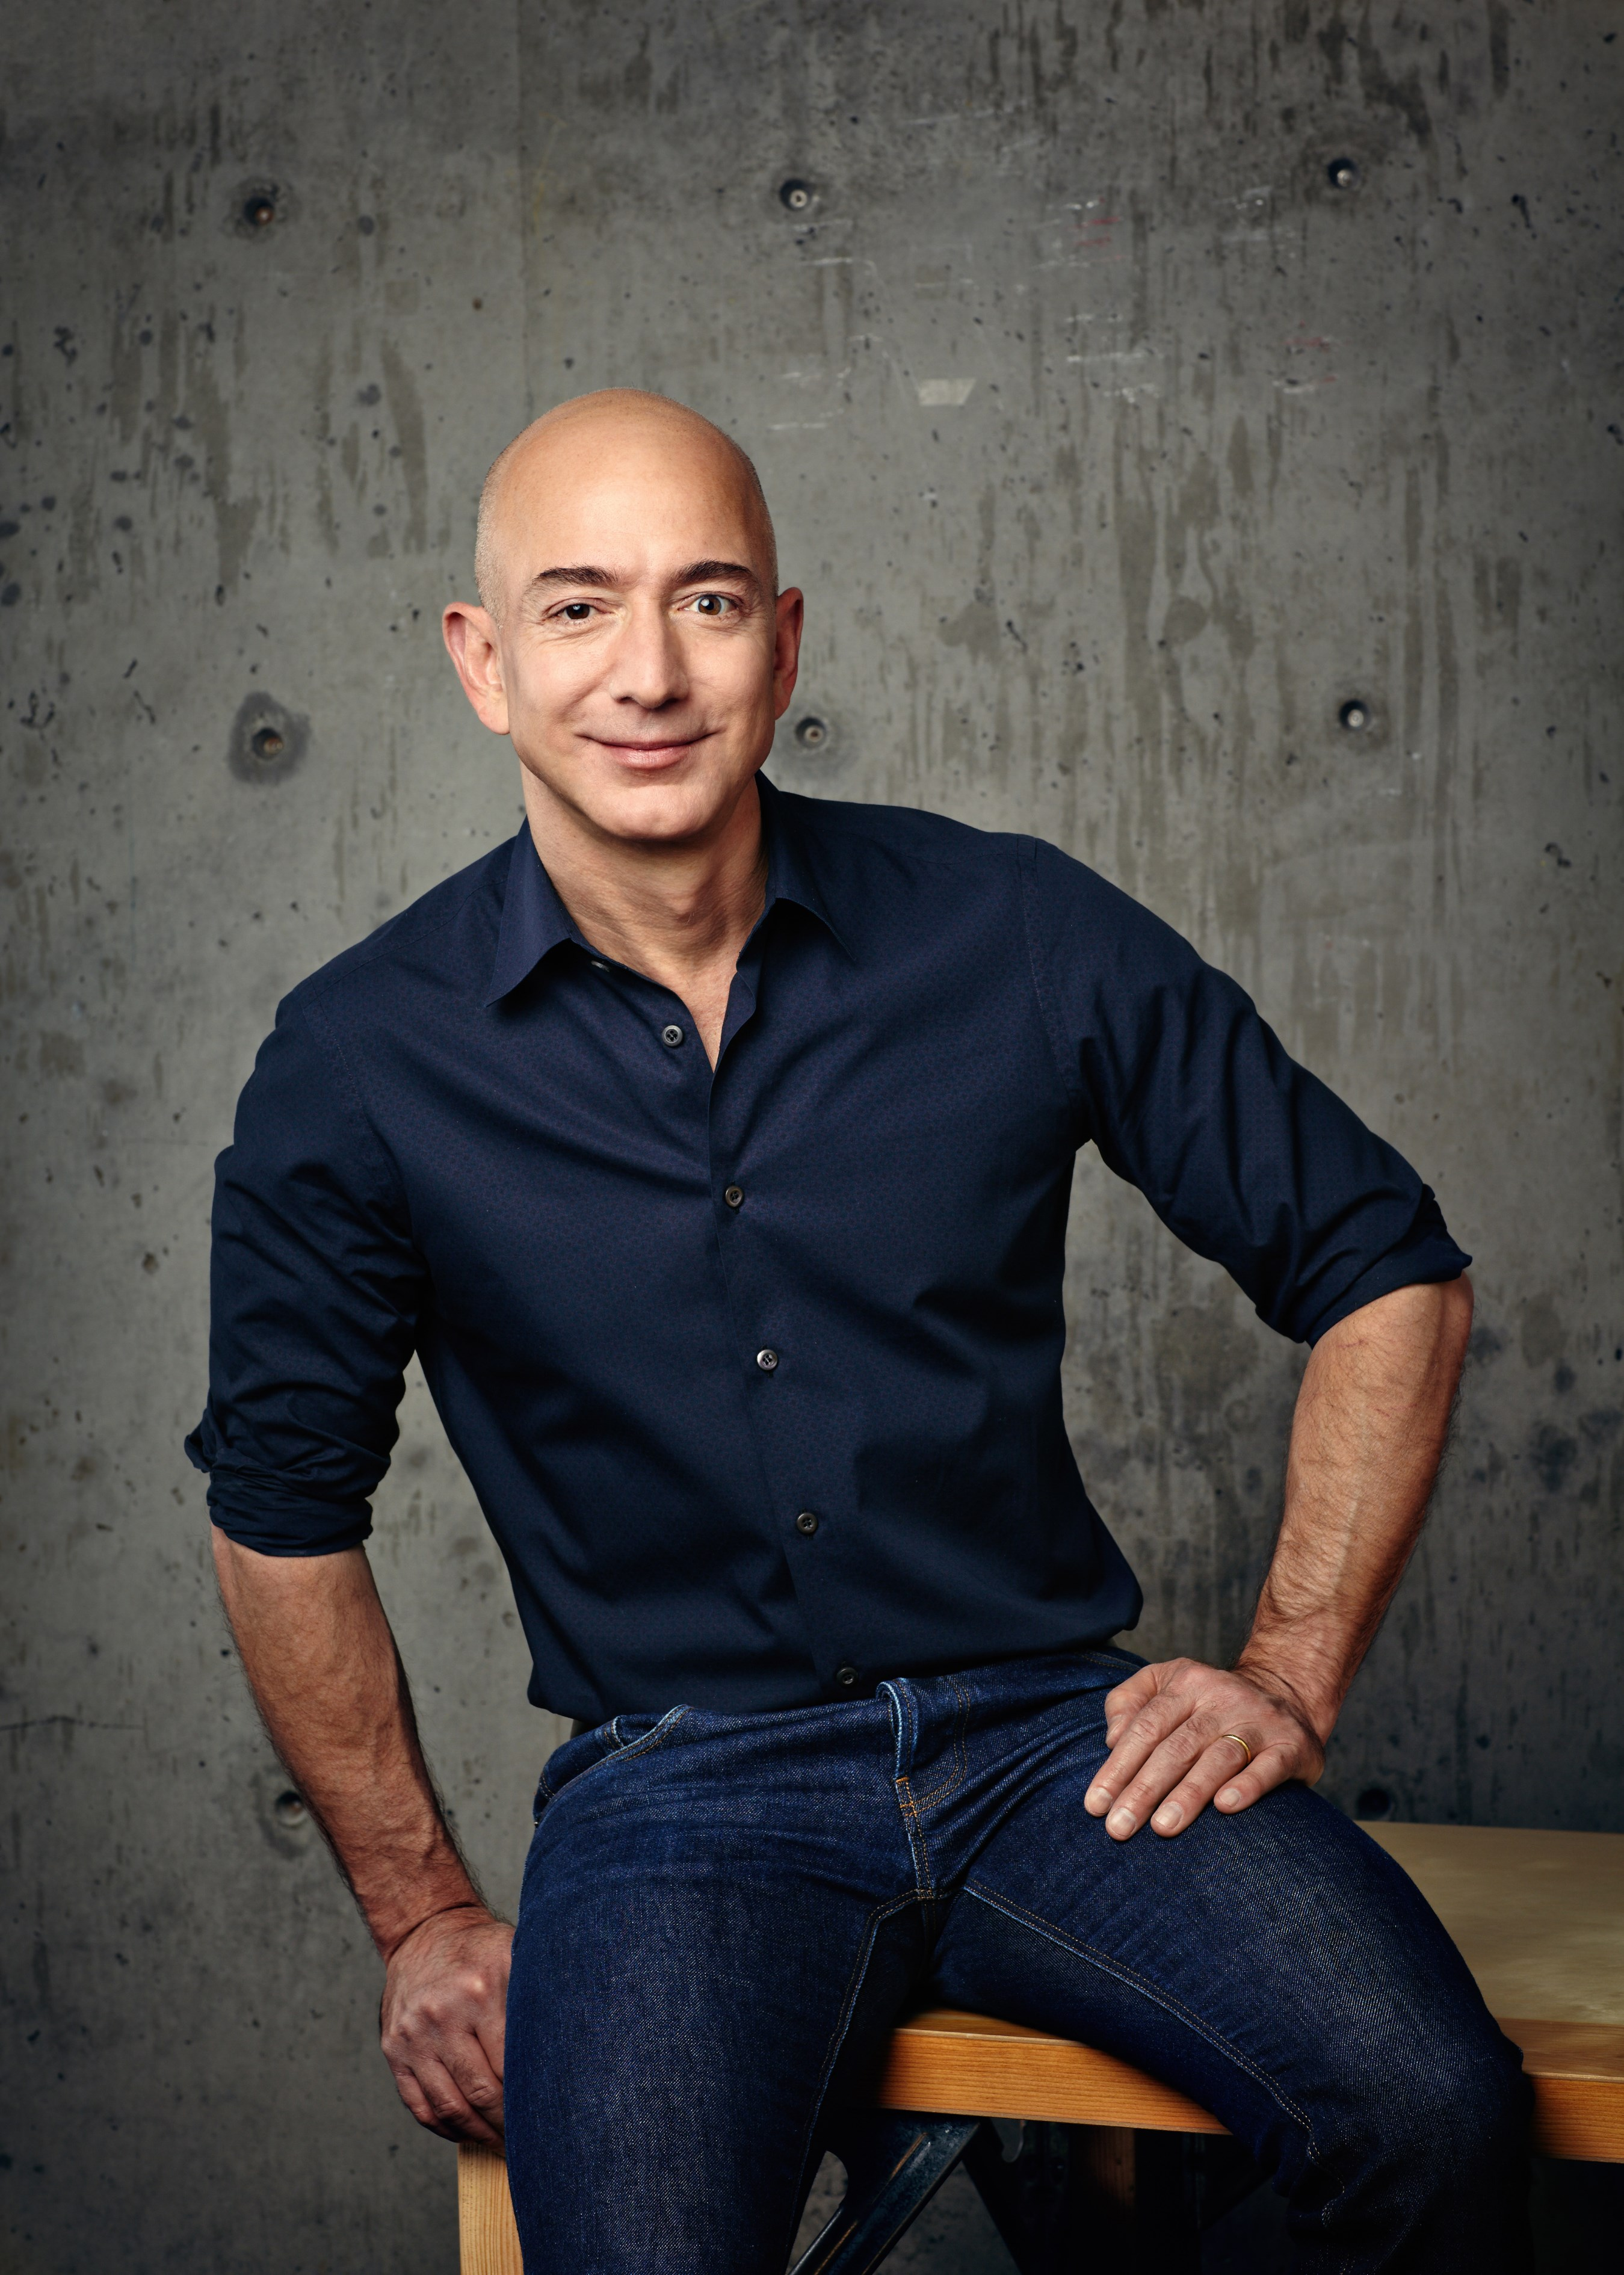 Jeff bezos amazon business plan